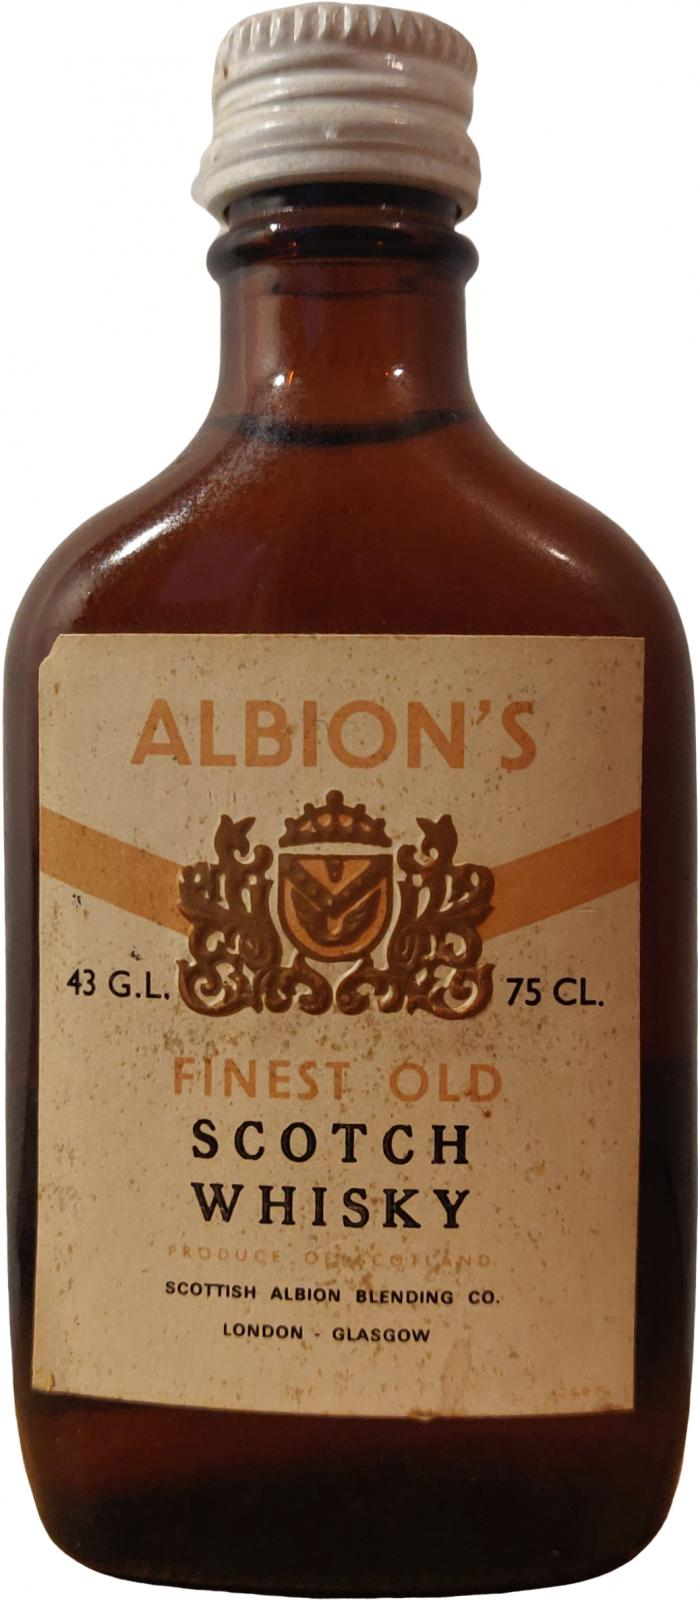 Albion's Finest Old Scotch Whisky